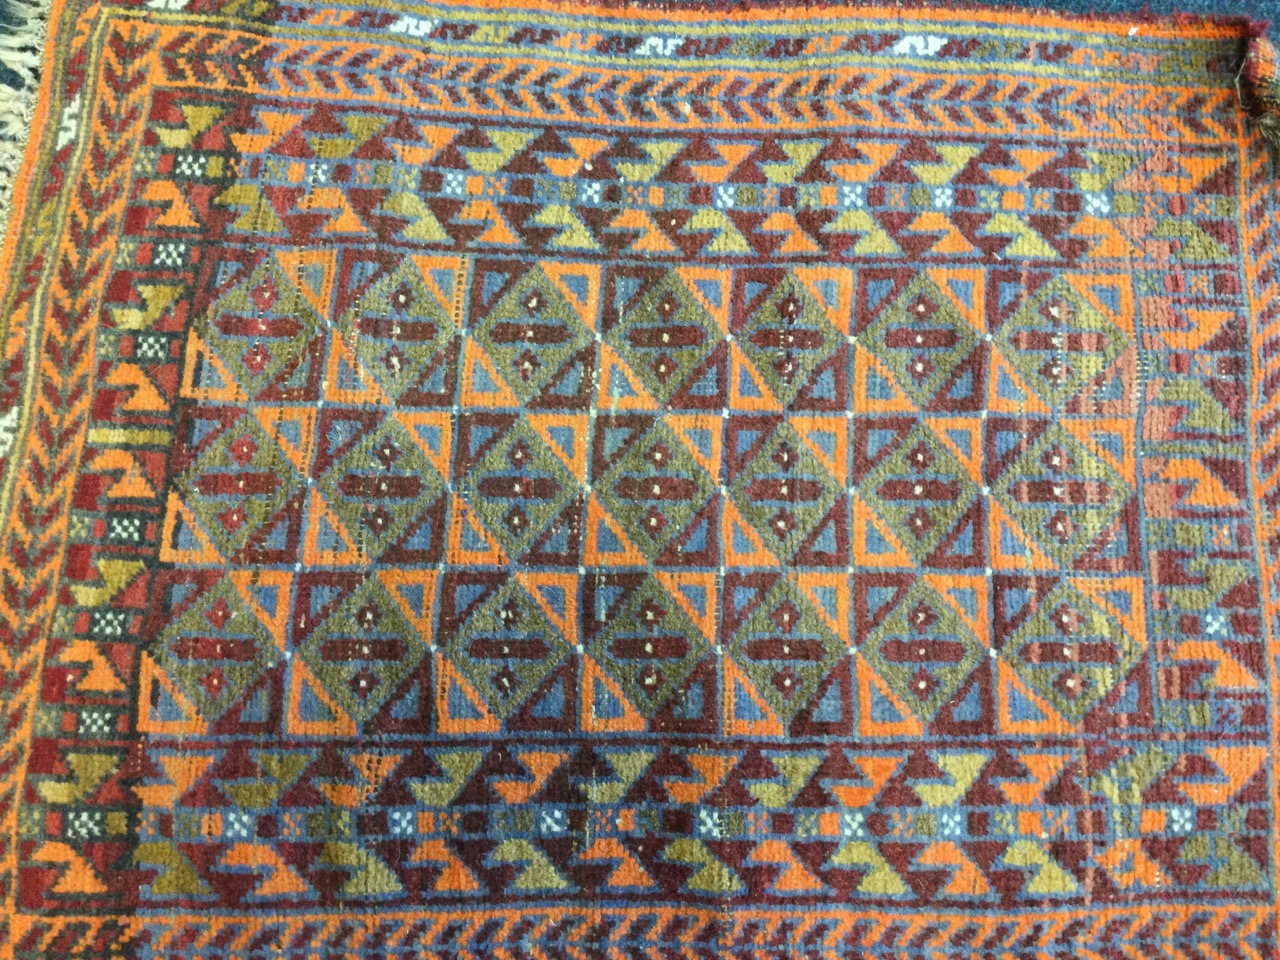 A Turkish rug woven with field of triangular & square panels framed by border of winged bat type - Image 3 of 3